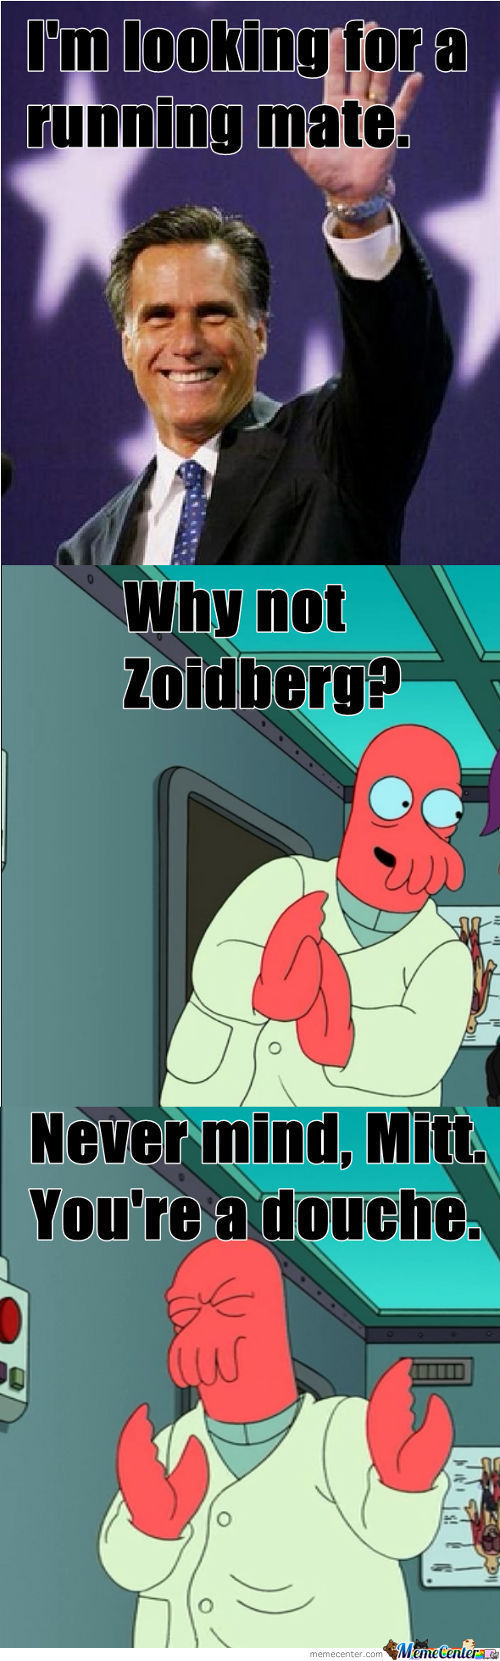 Vice President? Why Not Zoidberg?